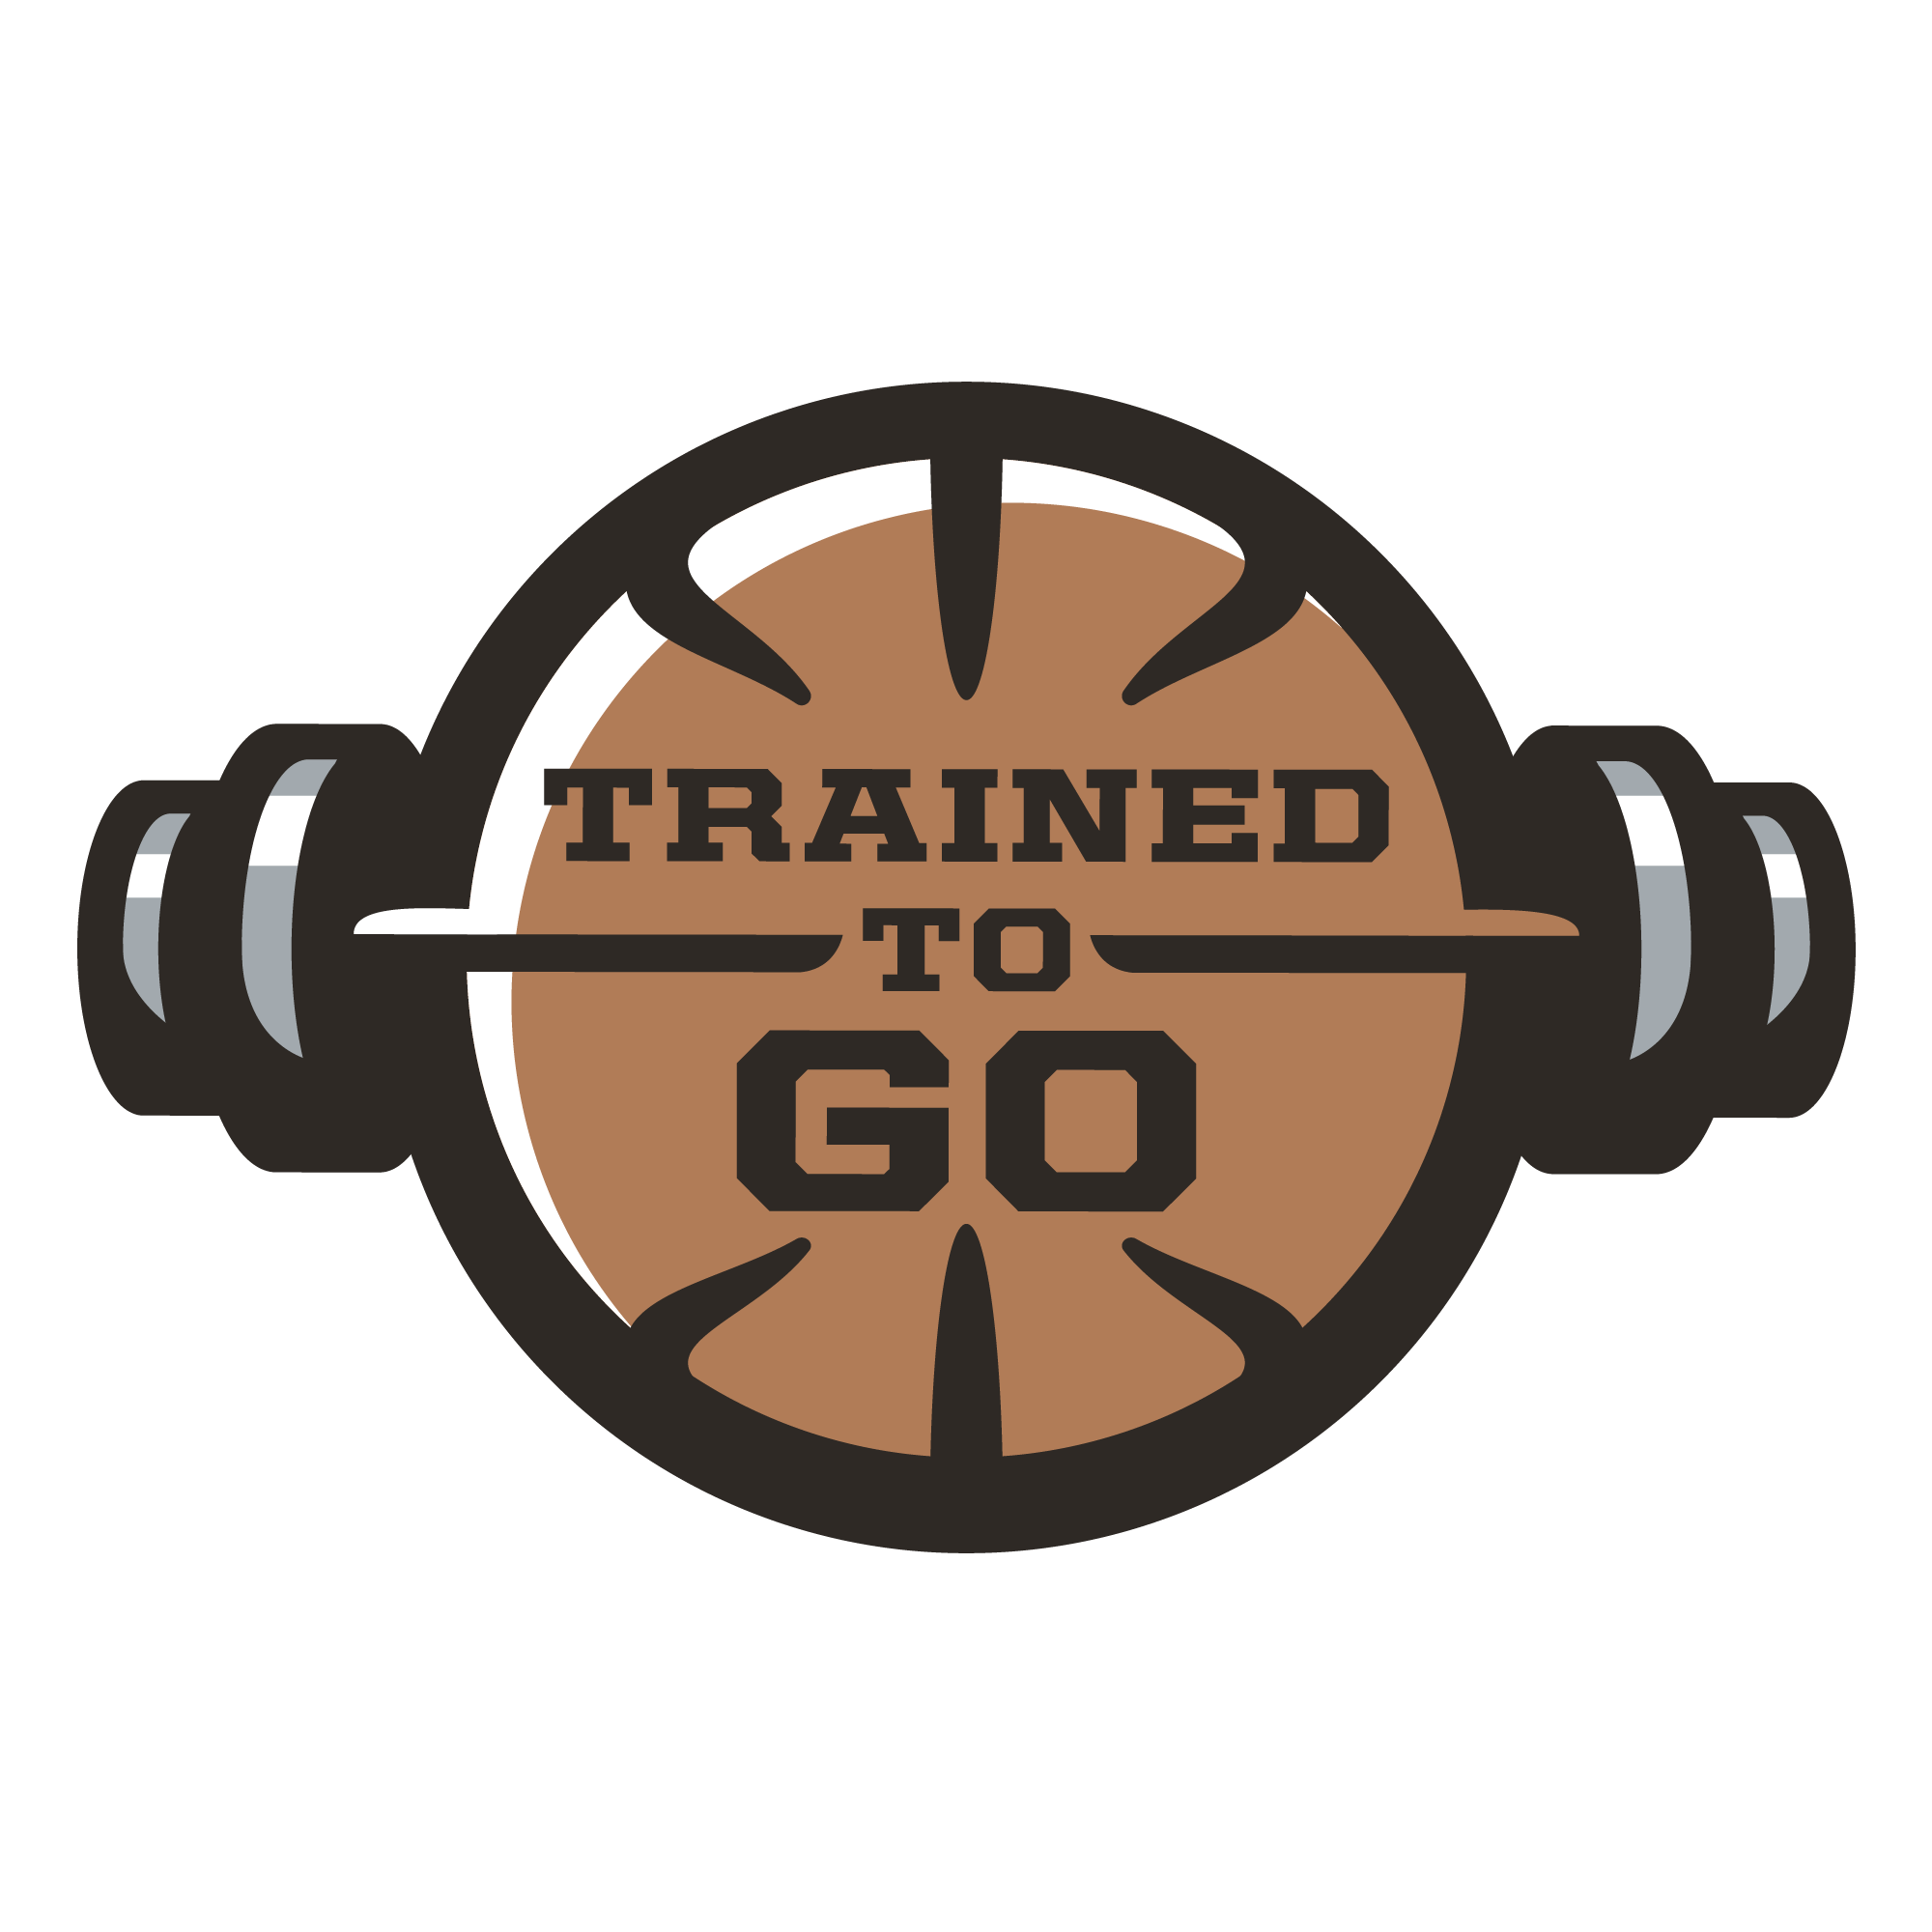 Basketball playoffs clipart clip art freeuse library WHO ARE: TRAINED TO GO TBT 2017 | The Basketball Tournament clip art freeuse library